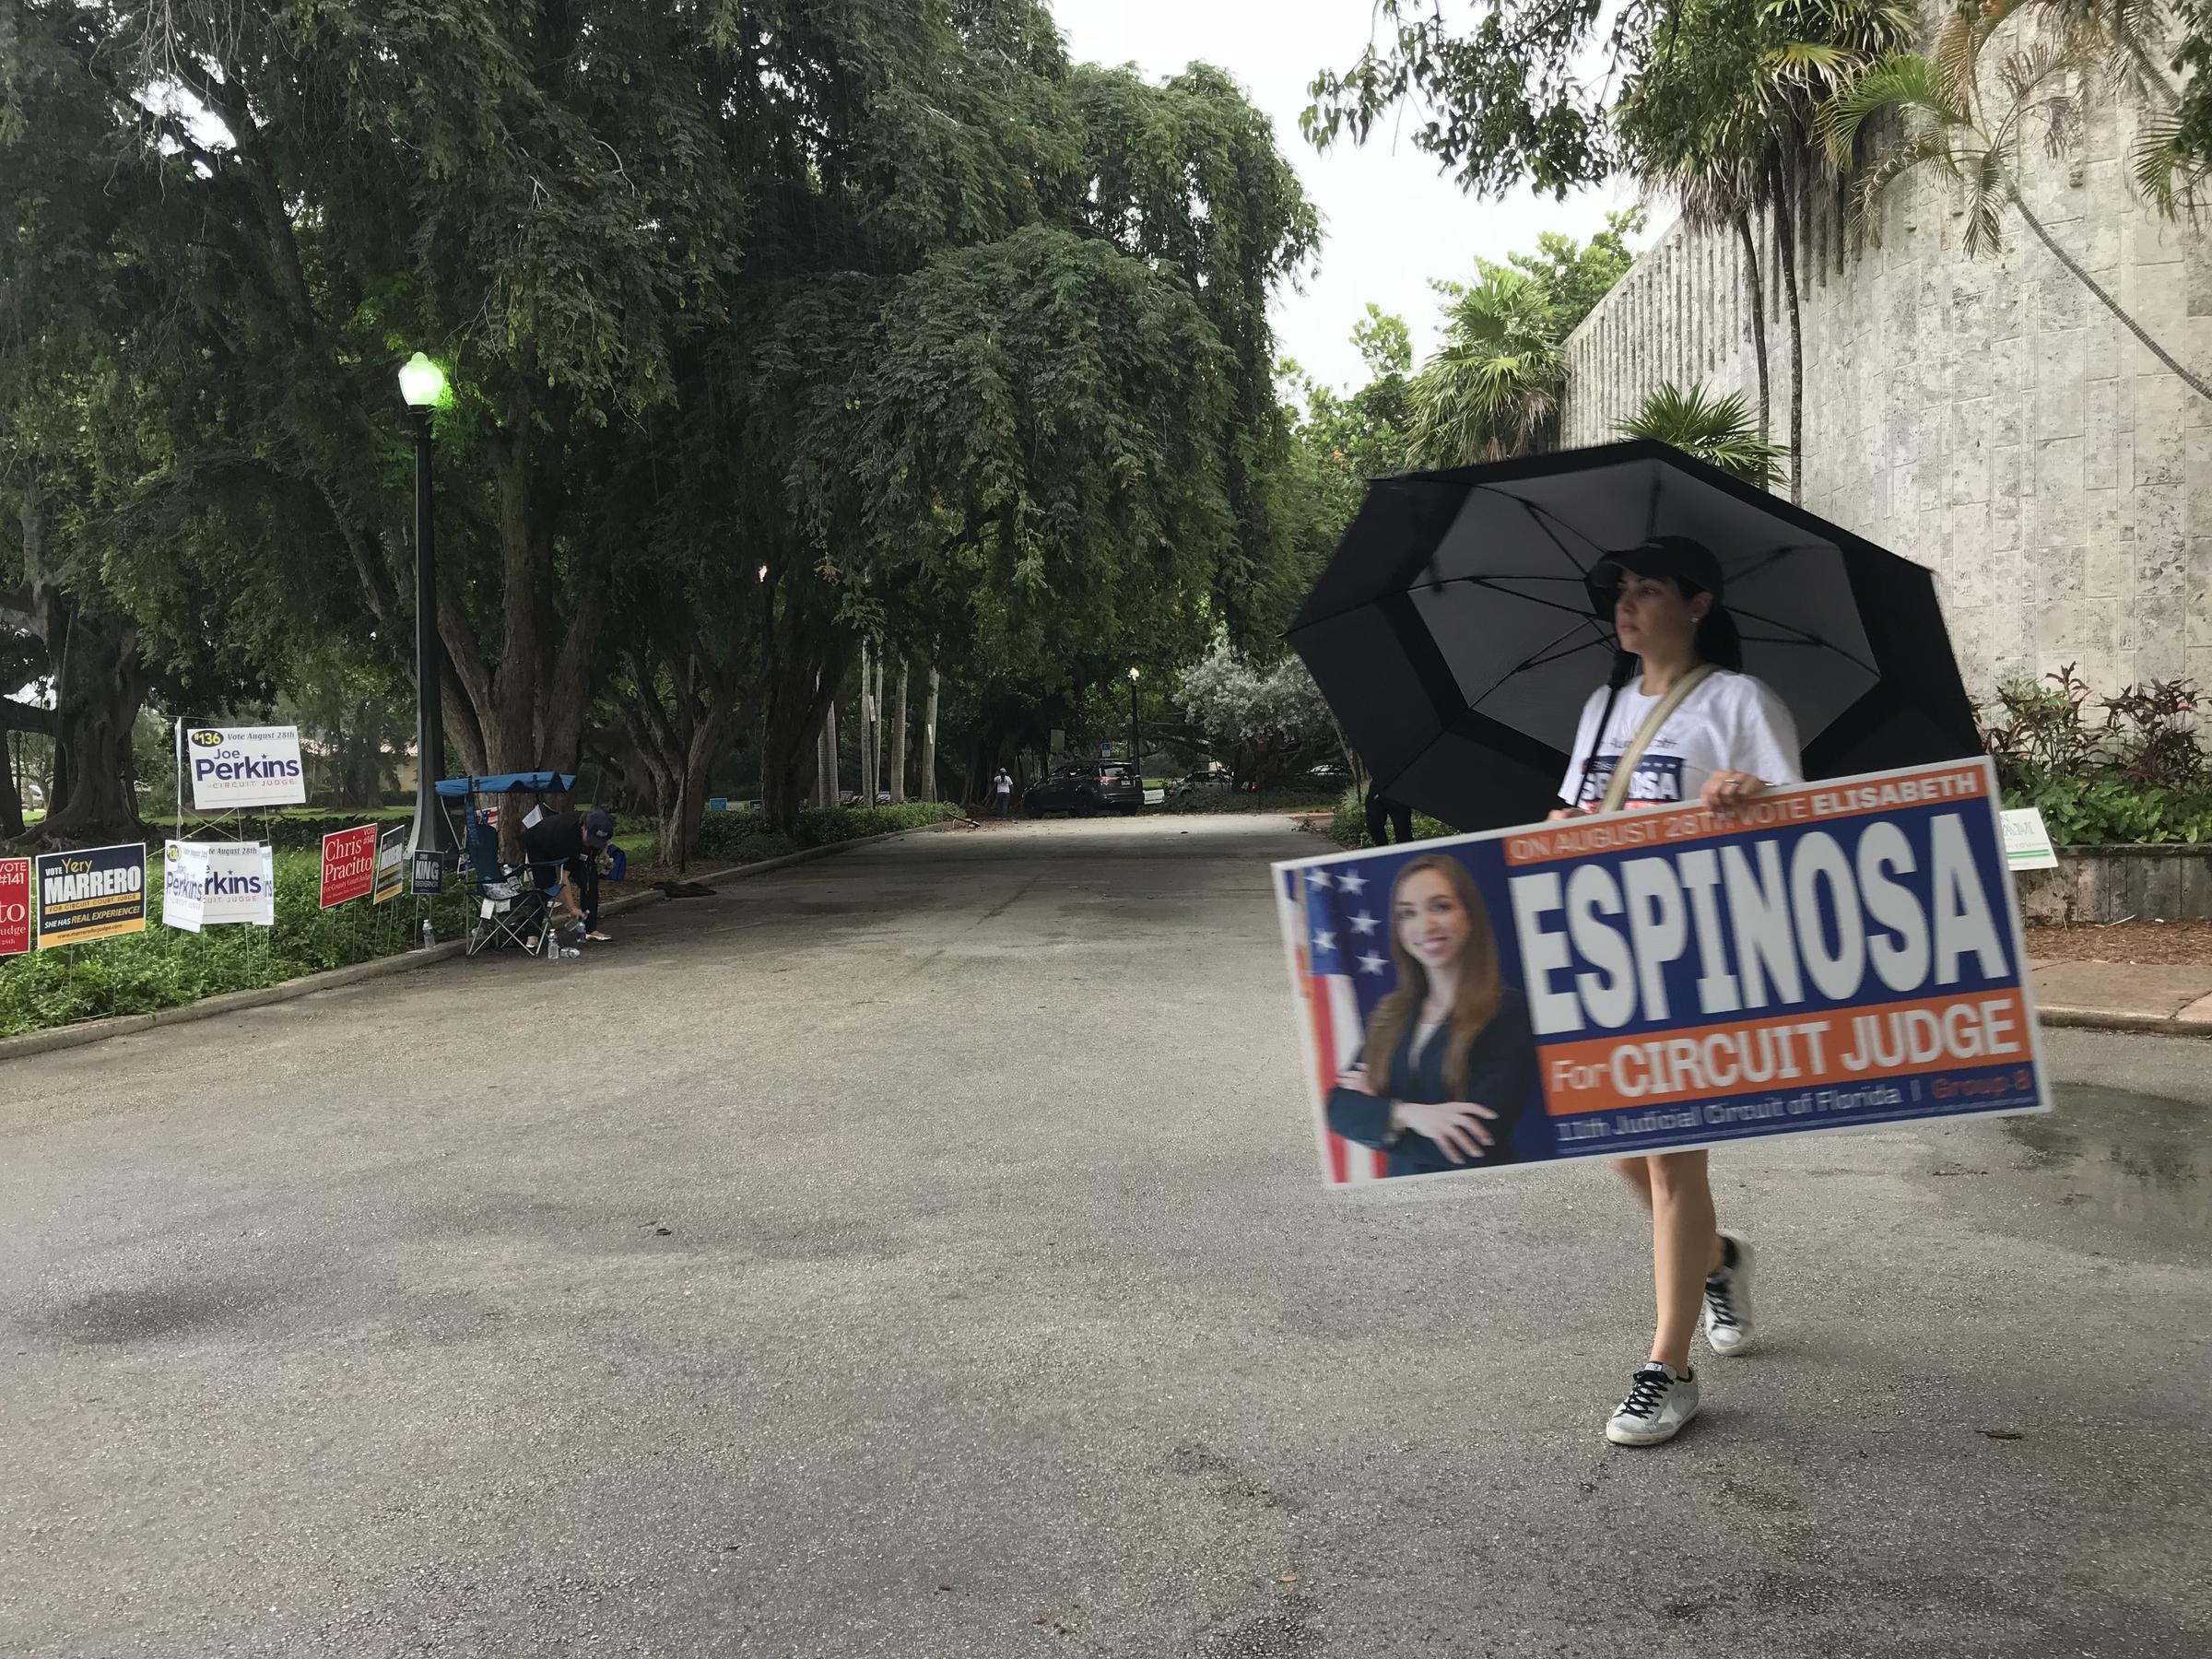 Election day live coverage polls close in south florida wlrn campaign workers in coral gables pack up and leave as it begins to rain on primary election day tuesday august 28 publicscrutiny Gallery